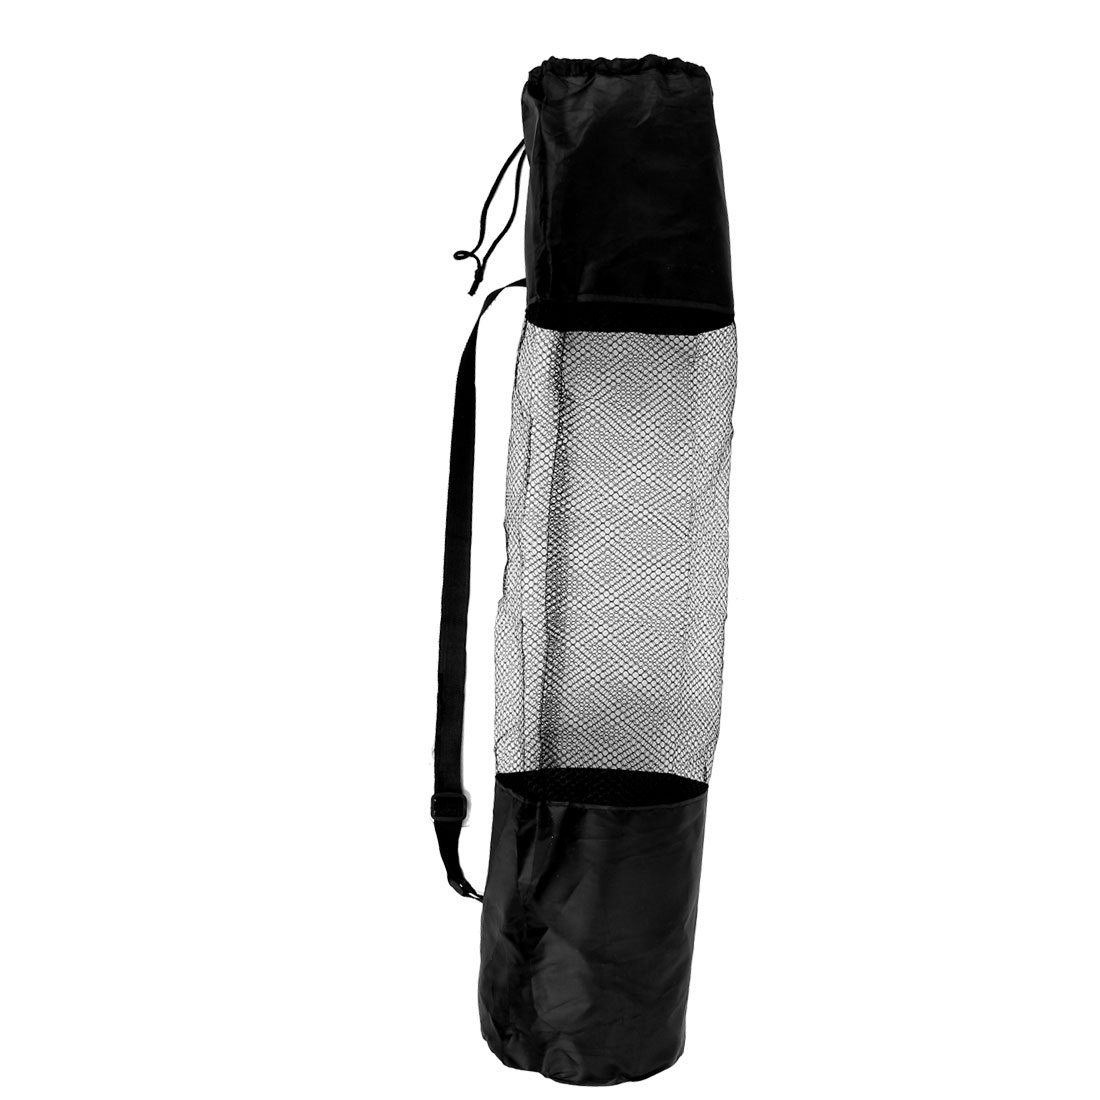 Adjustable Strap Black Nylon Drawstring Yoga Pilates Mat Pad Center Mesh Net Carrier Bag 67cm x 22cm